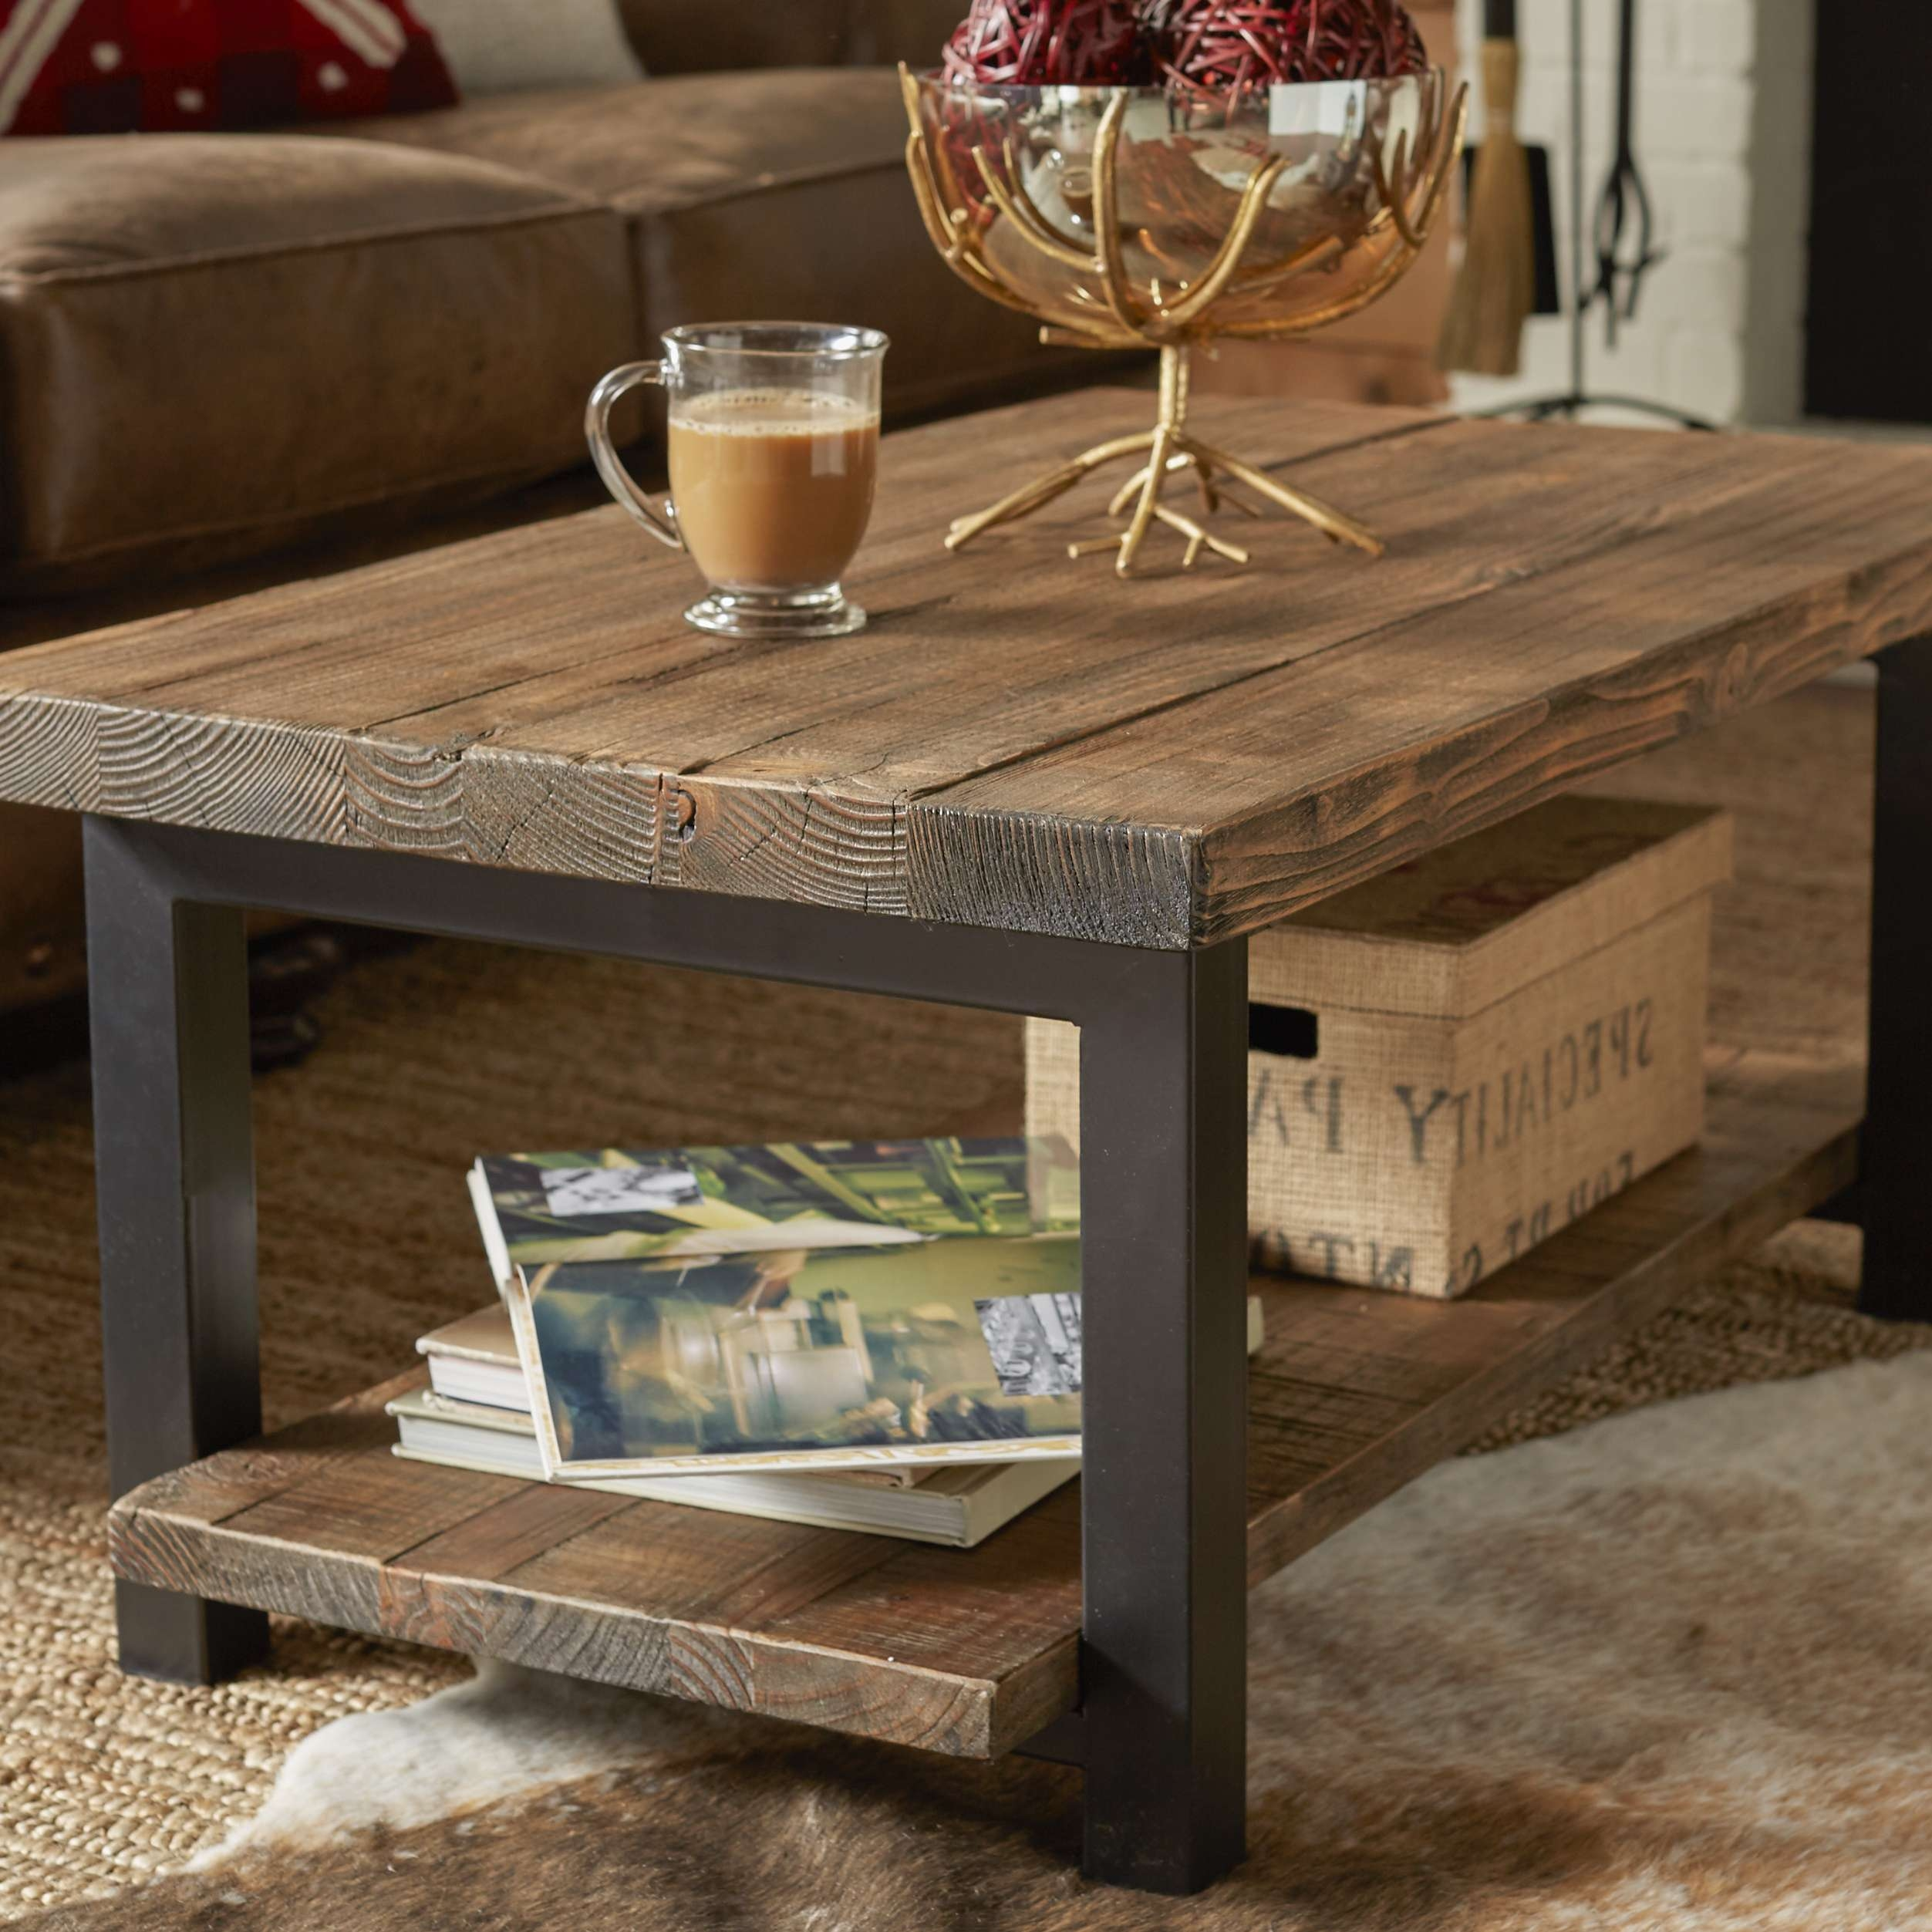 Tea Table Design Furniture Home Decor Amp Interior Exterior ~ Ideas of wayfair coffee tables